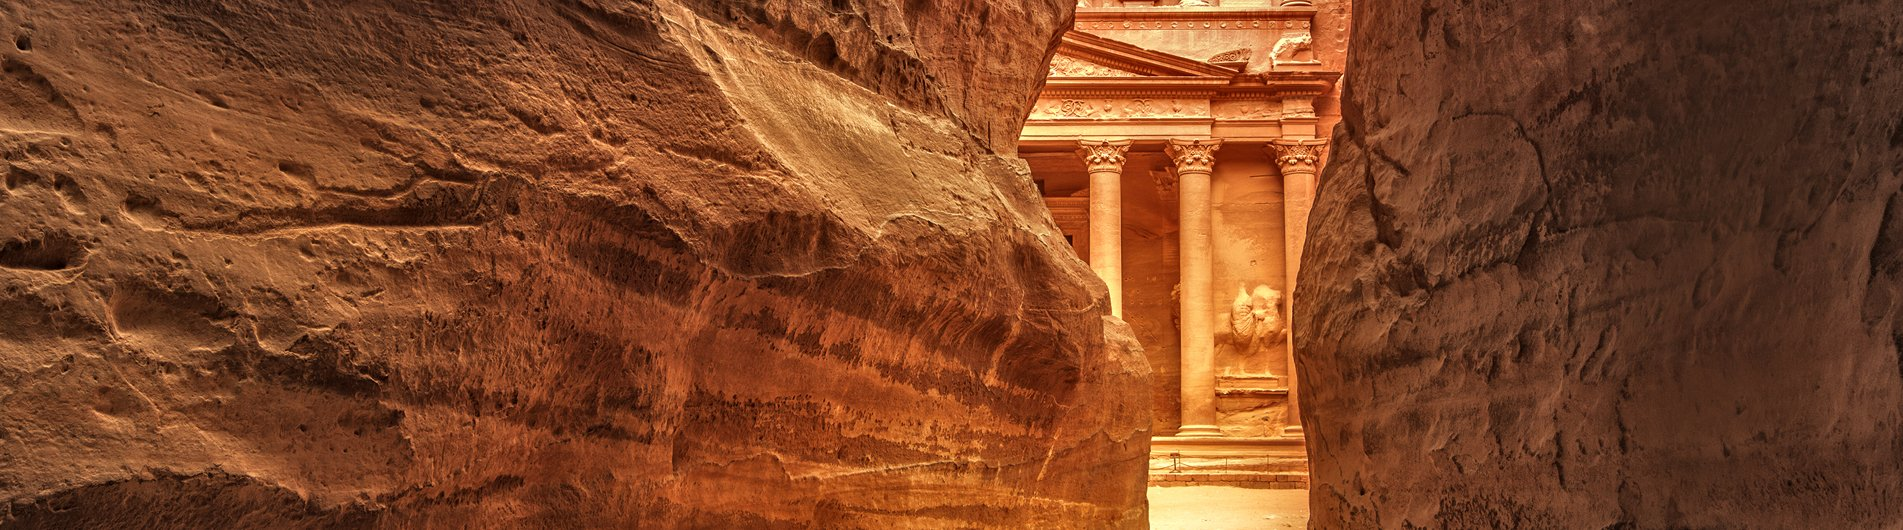 Guided Tours in Jordan